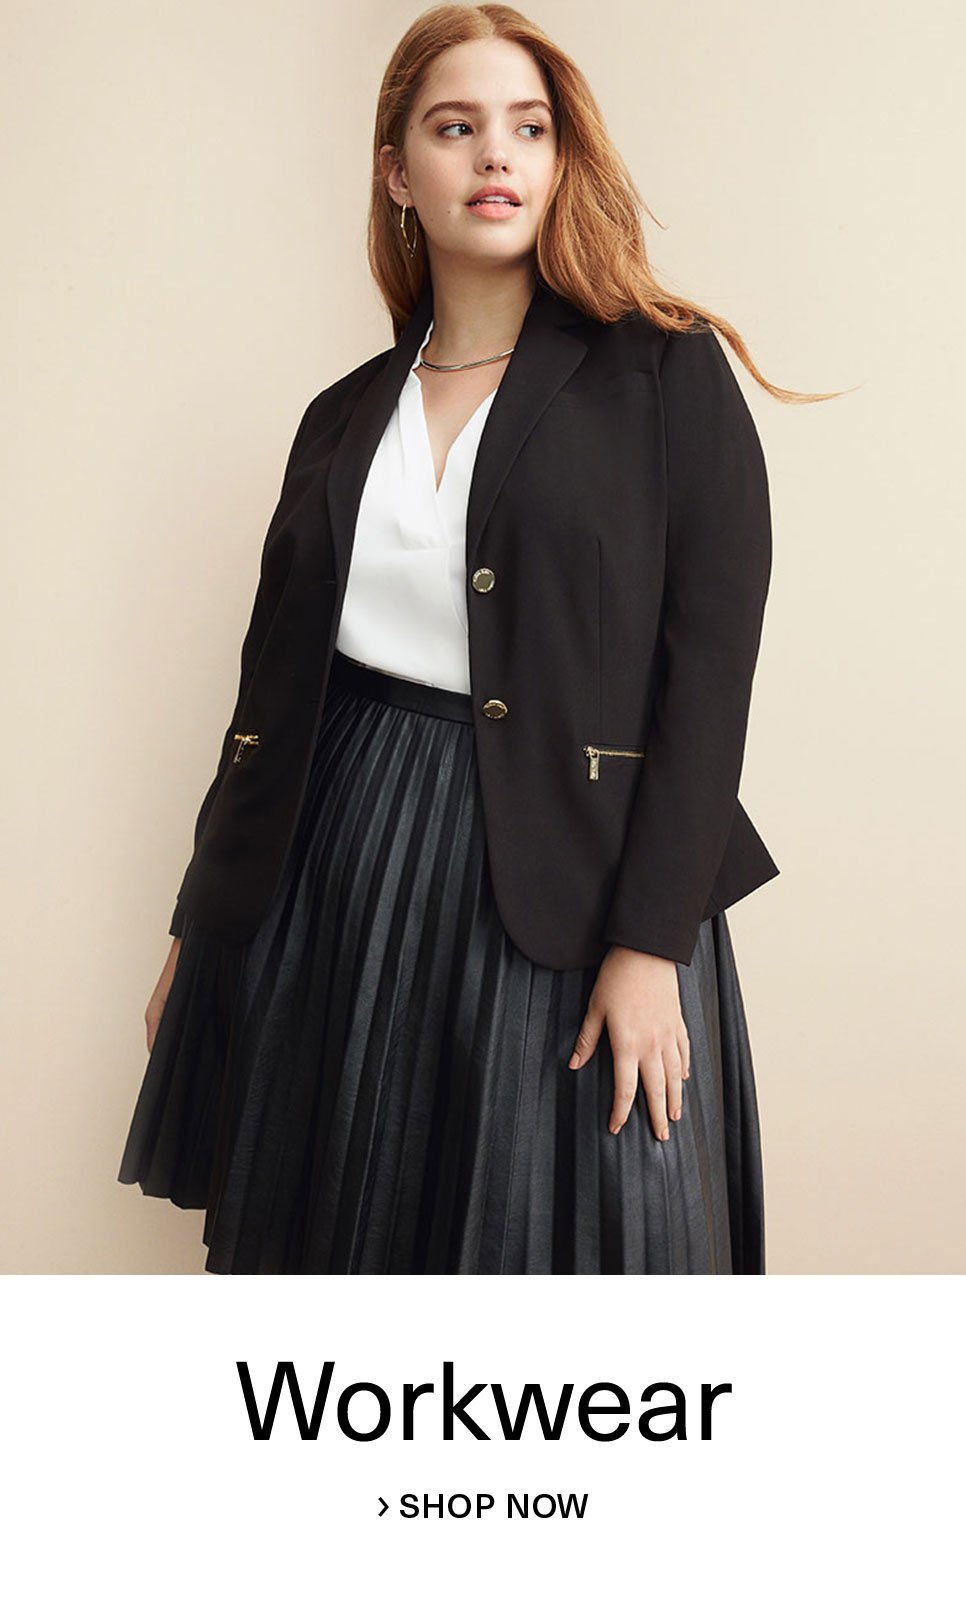 Women 39 S Plus Size Clothing On Dresses